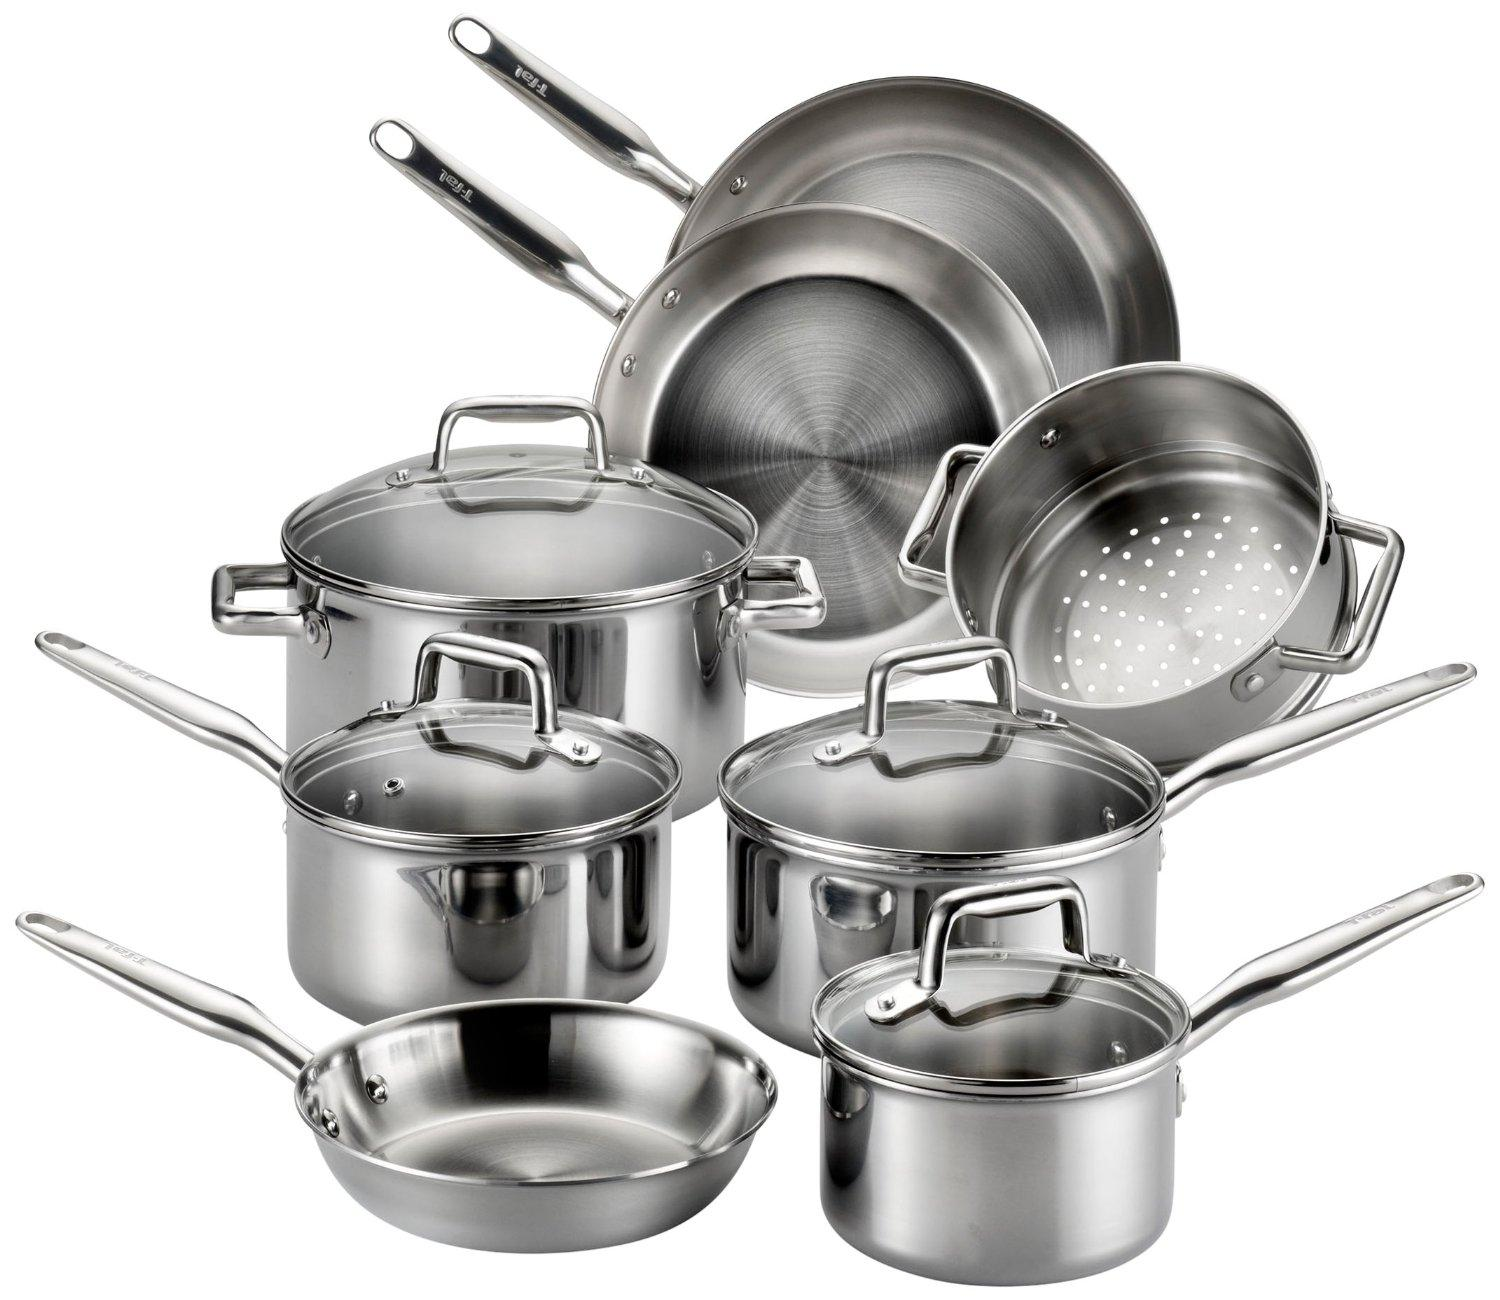 $154.95 T-fal E469SC Tri-Ply Stainless Steel Multiple Layer Cookware Set, 12-Piece